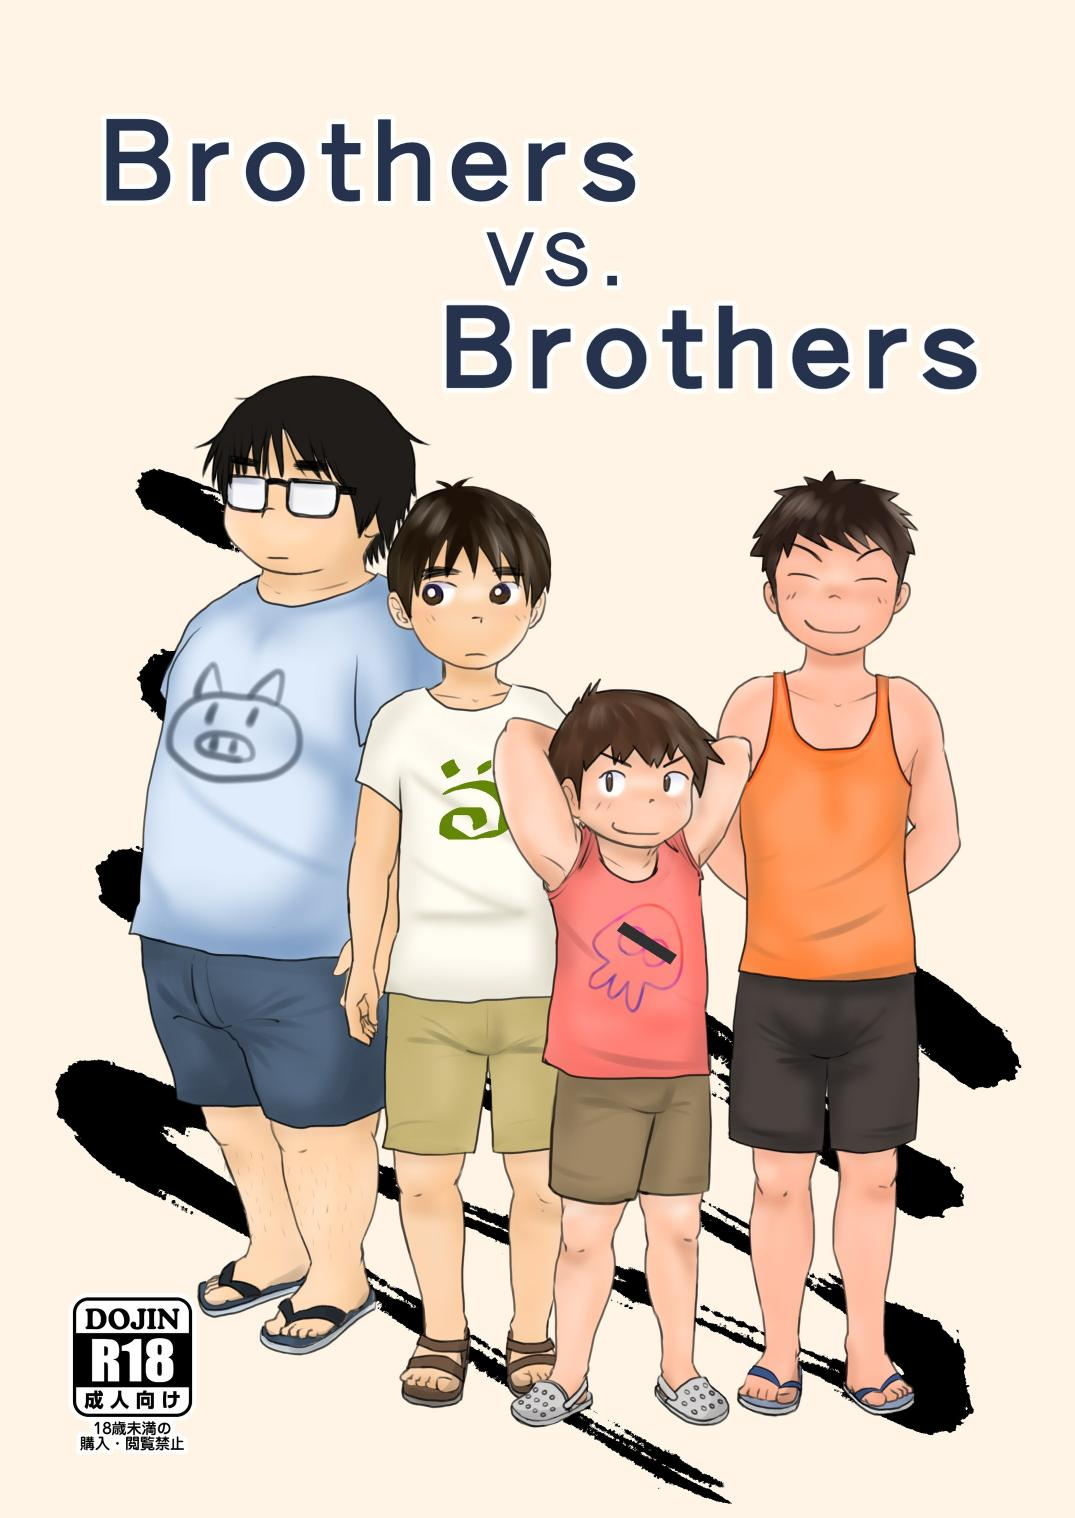 Brothers VS. Brothers